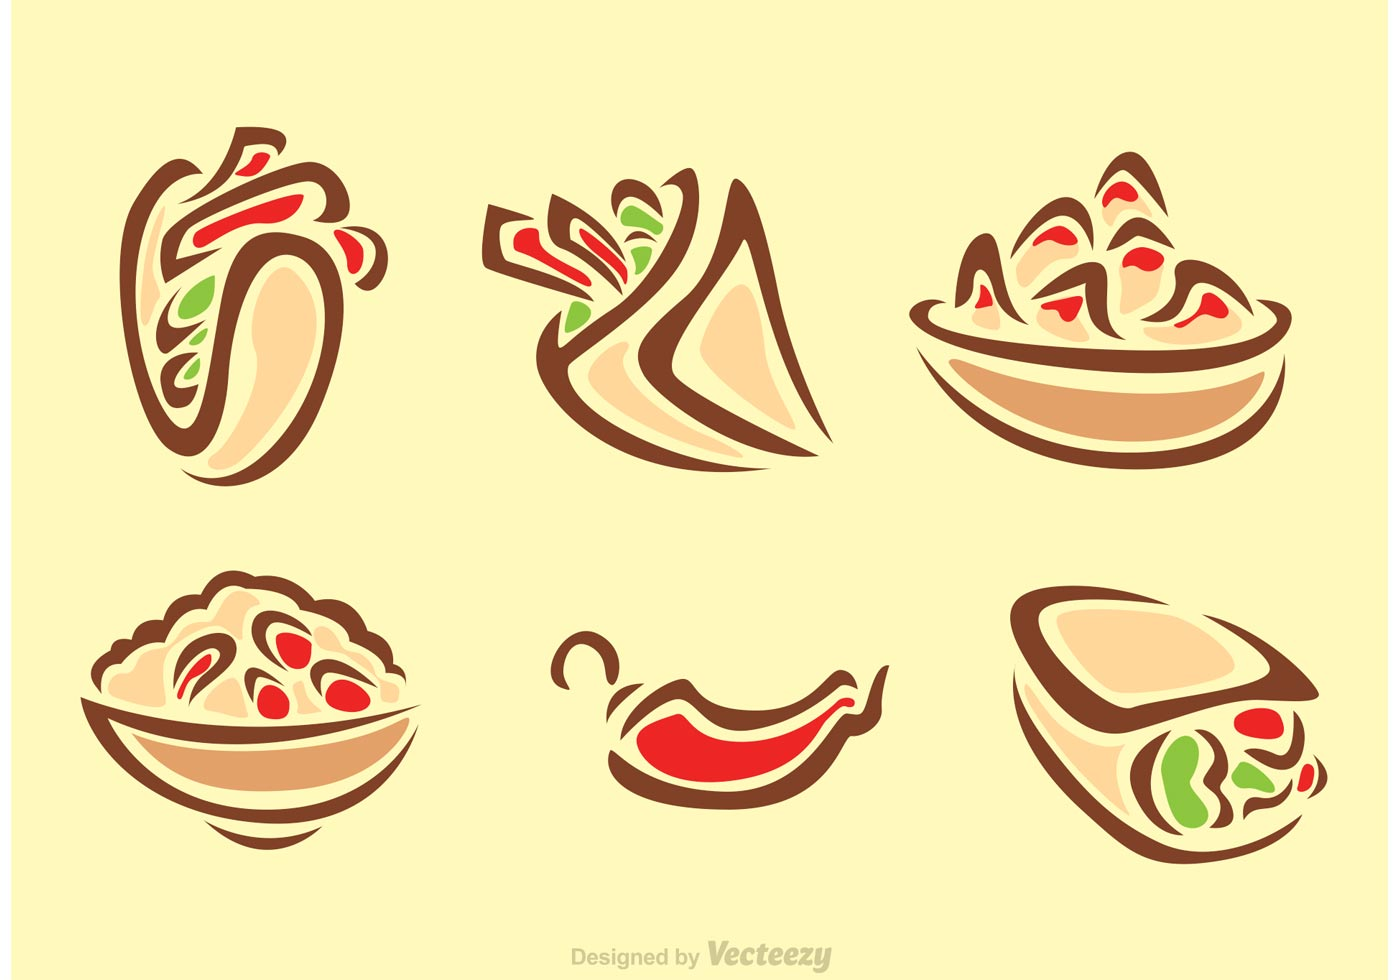 Stylish mexican food icons download free vector art stock graphics images - Stylish cooking ...